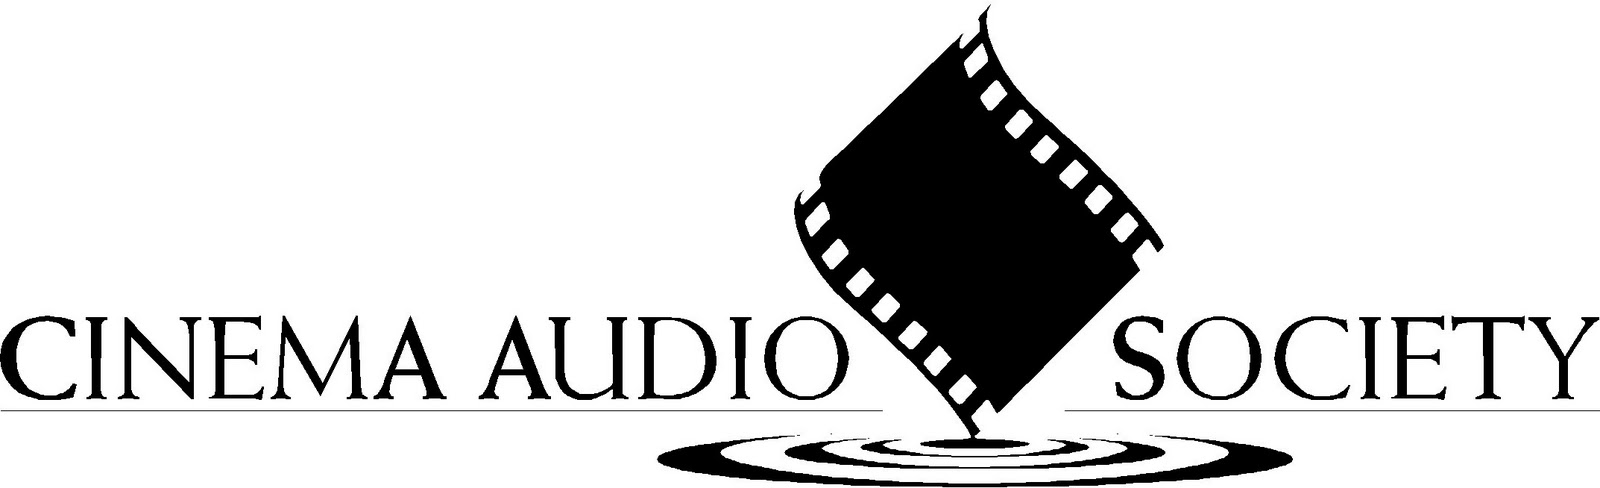 Sound Mixer Logo in Sound Mixing